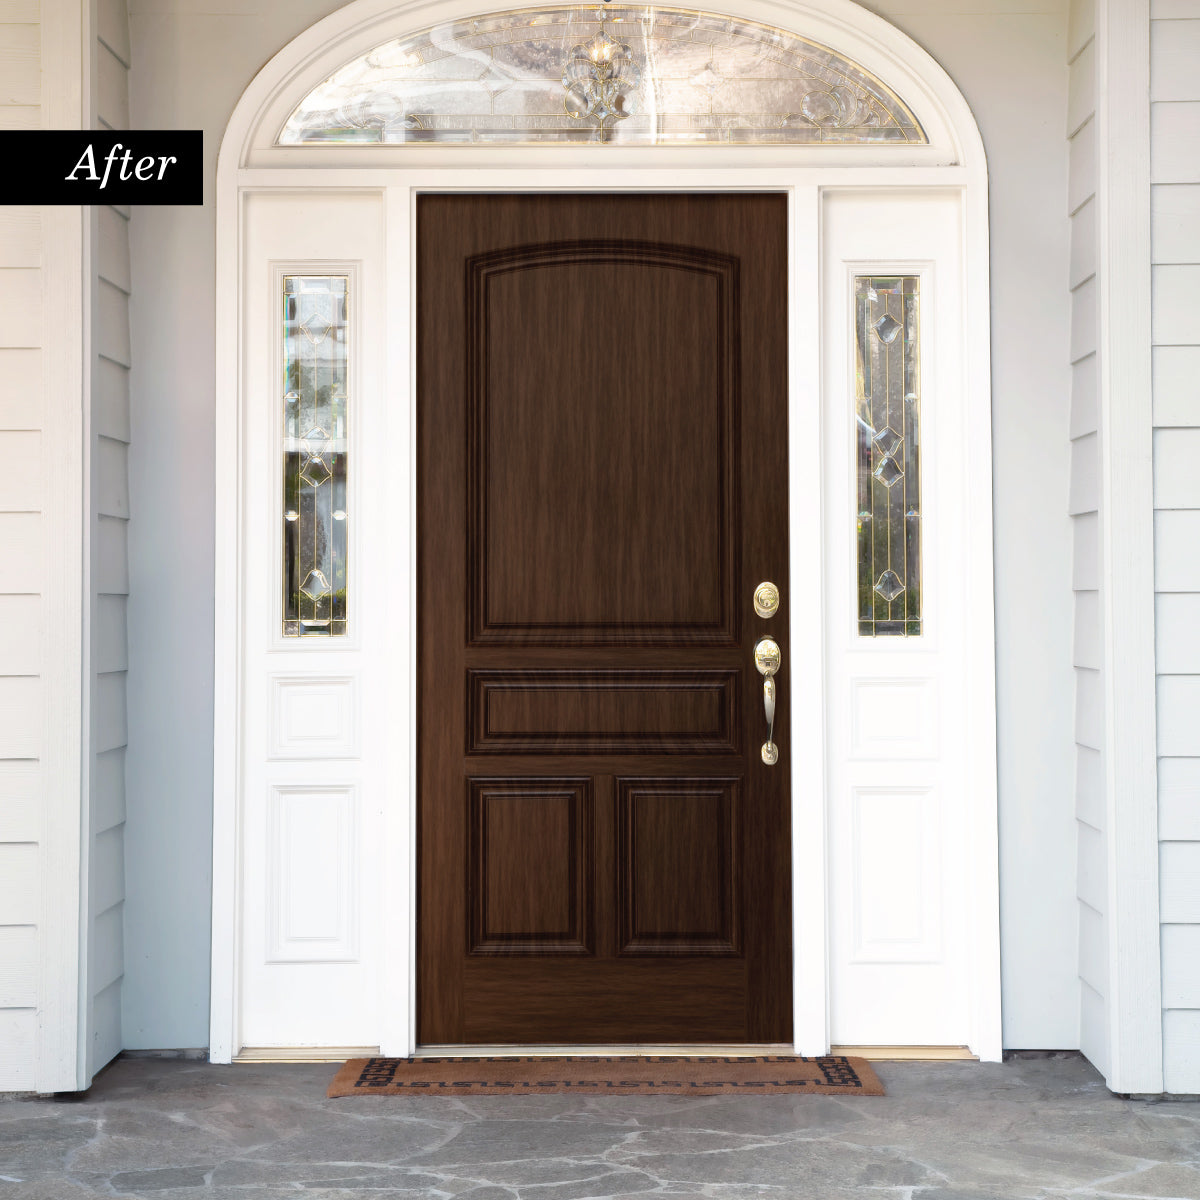 Giani black walnut wood look kit for front doors giani inc giani black walnut wood look kit for front doors rubansaba